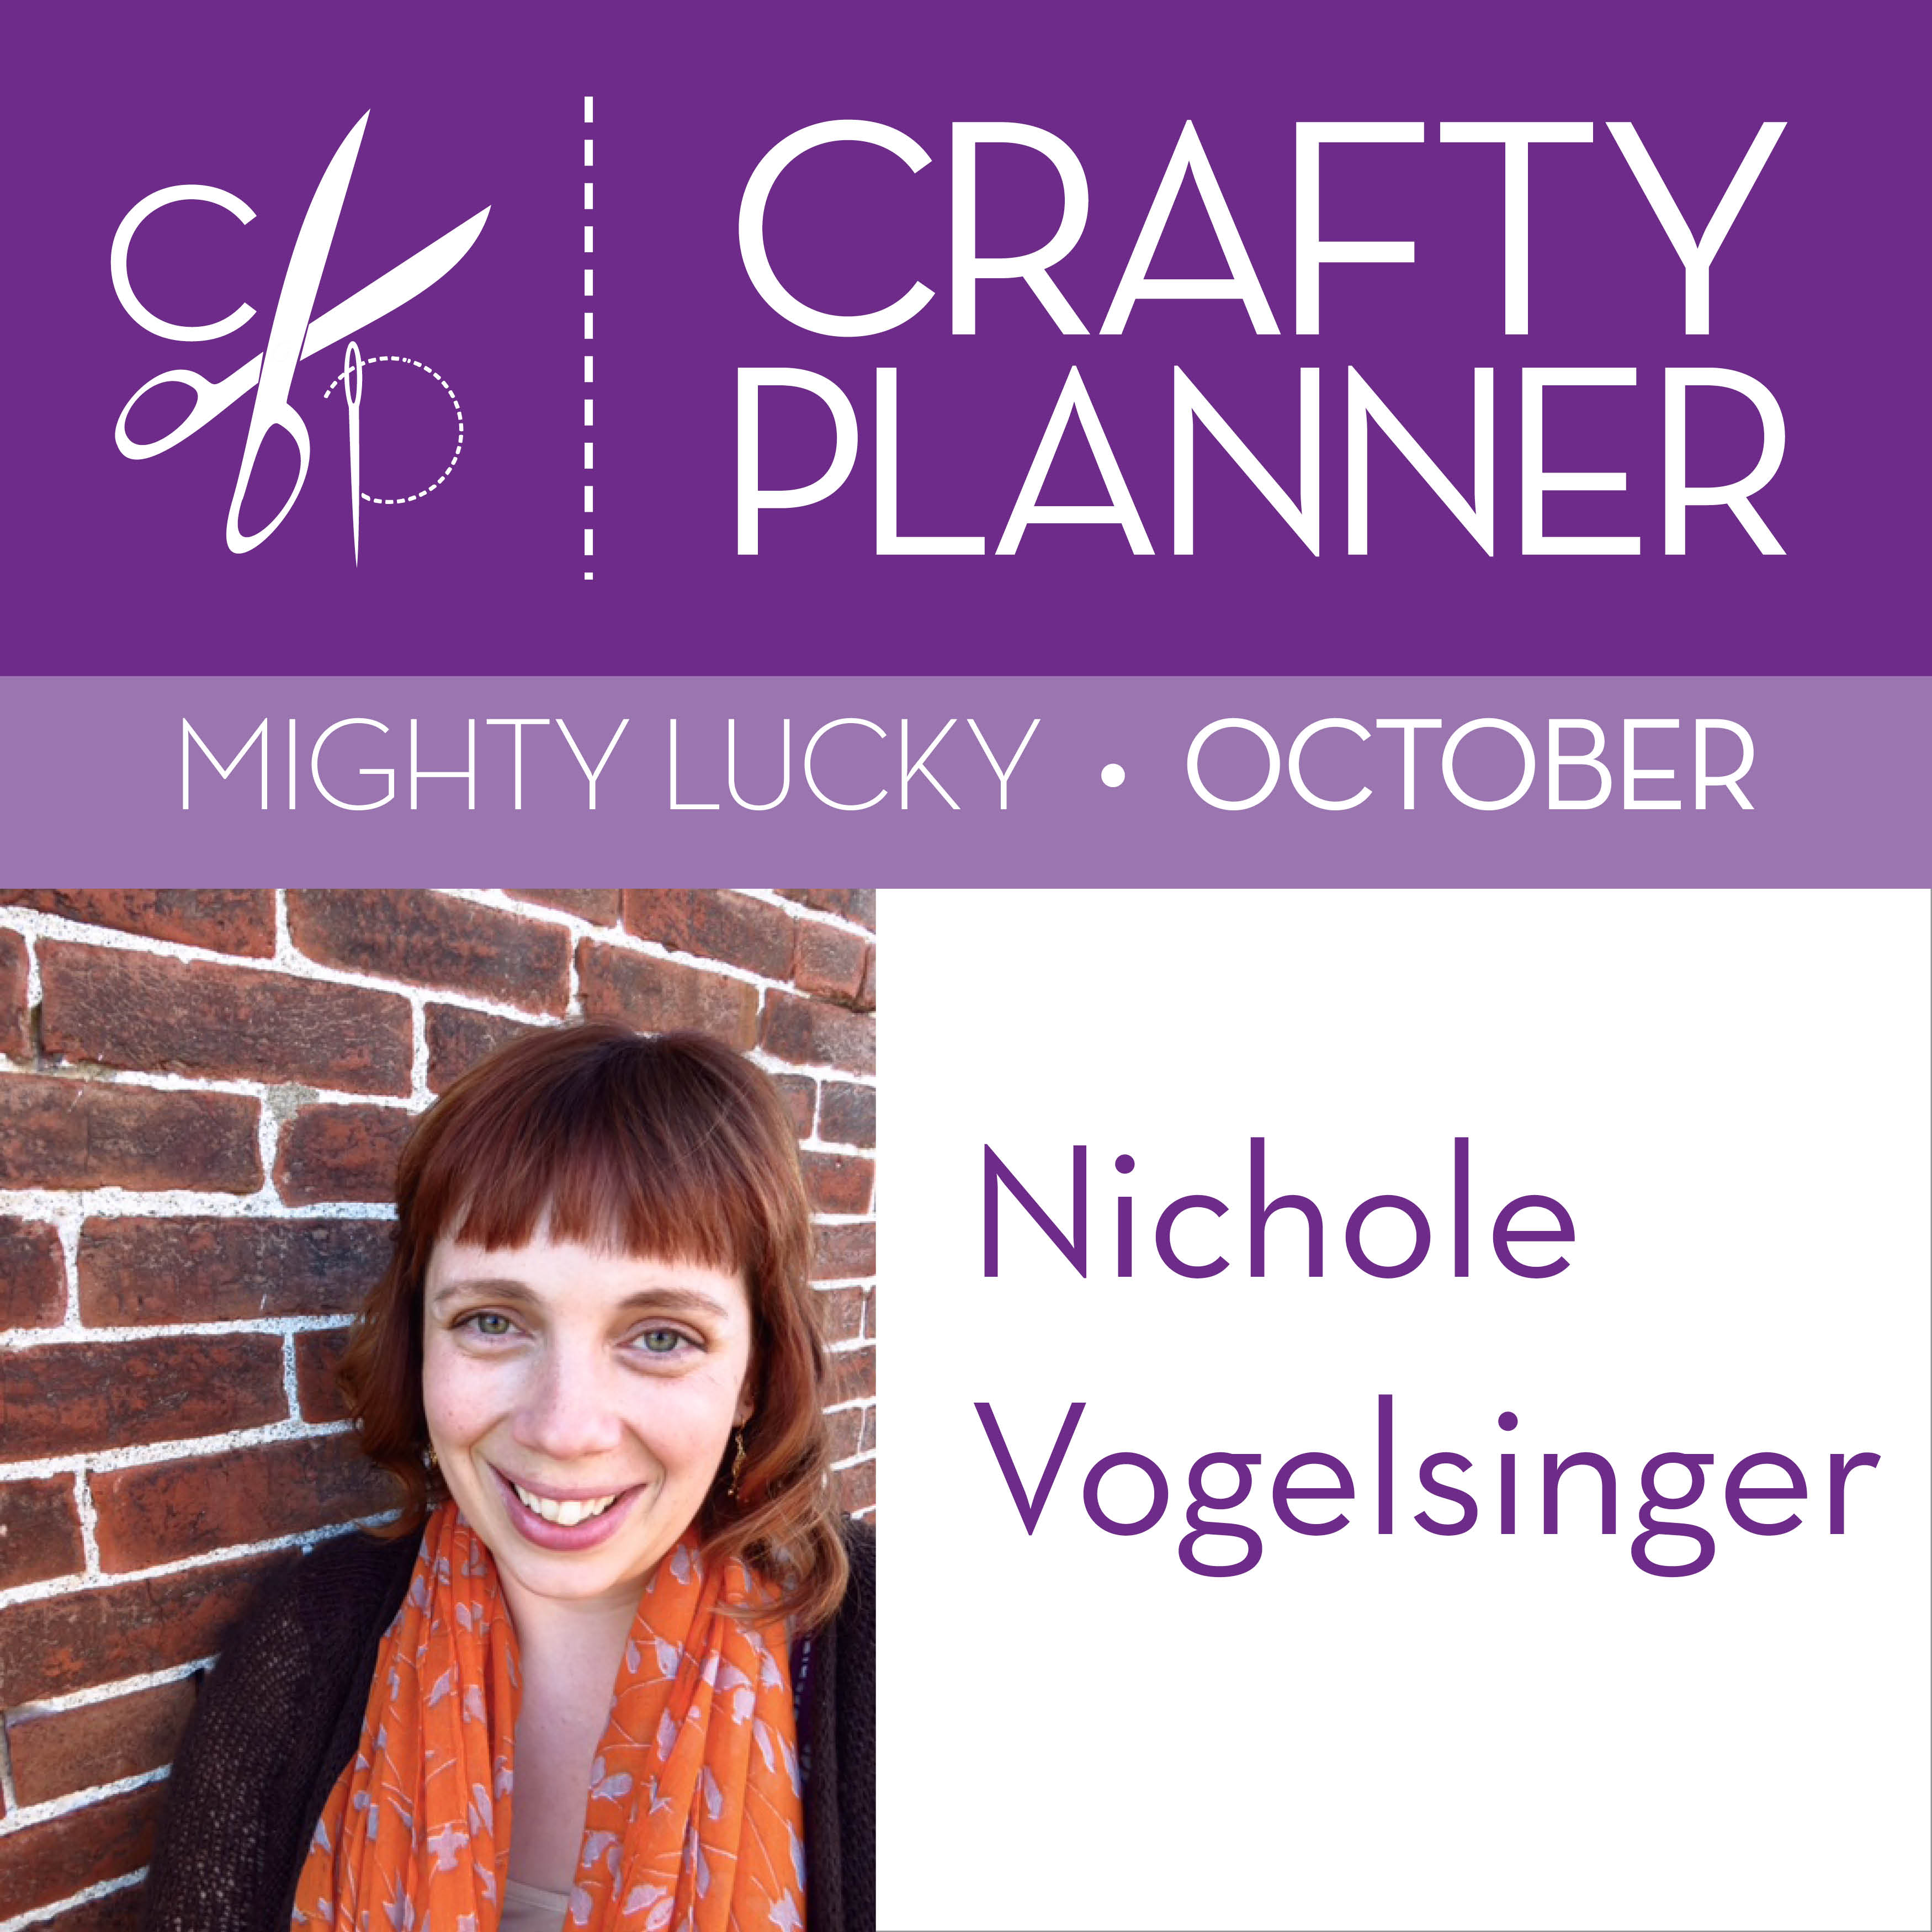 Nichole Vogelsinger of Wild Boho / Mighty Lucky October Edition